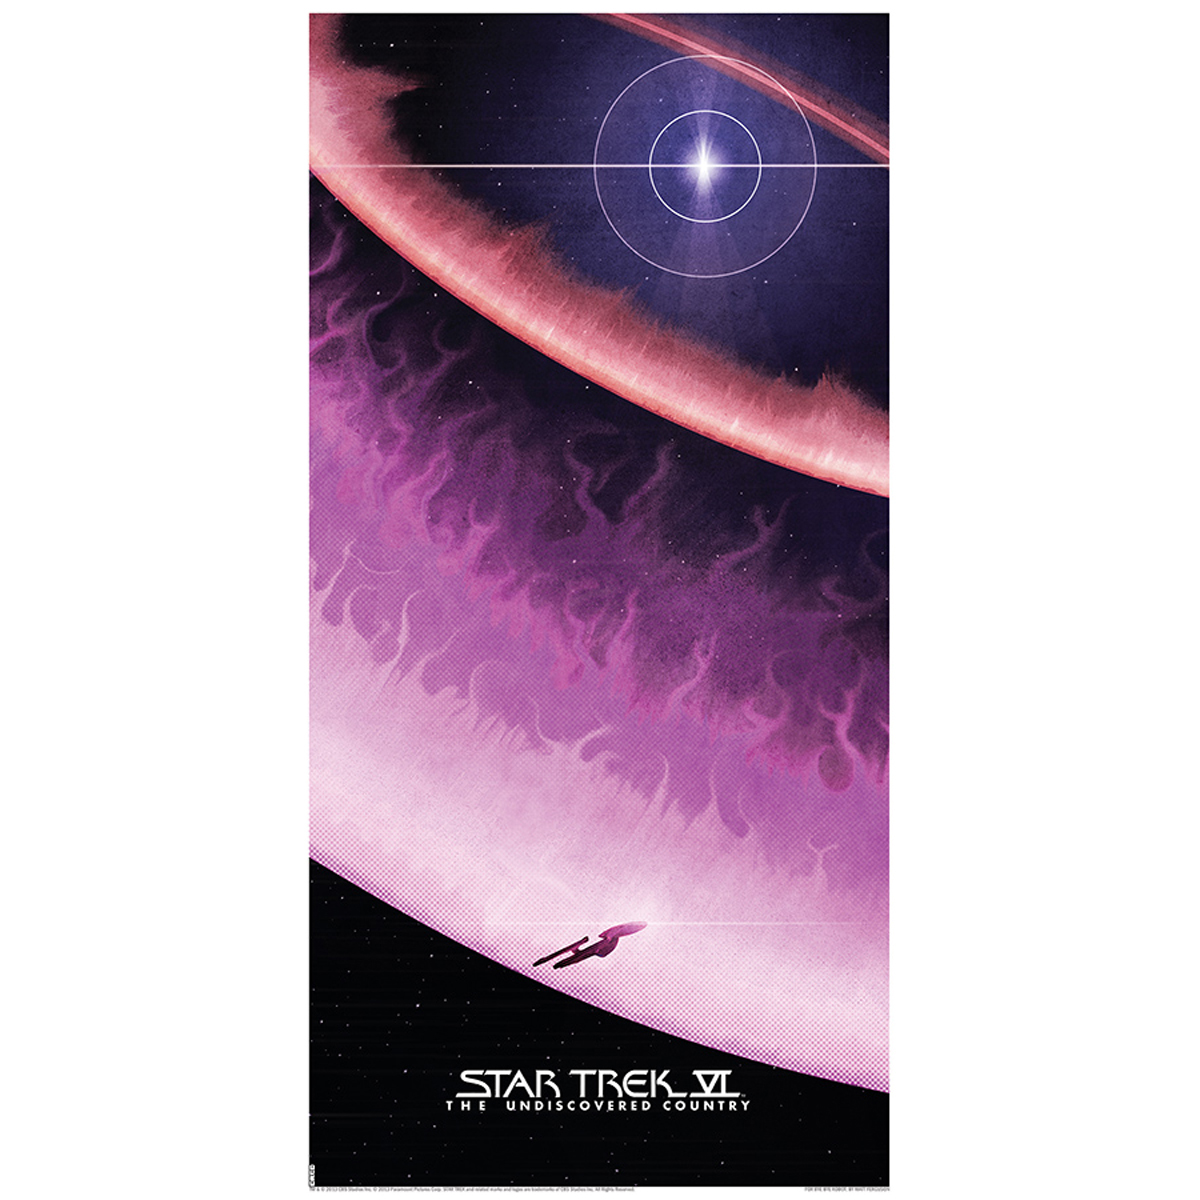 Star Trek VI: The Undiscovered Country Lithograph [12x24]